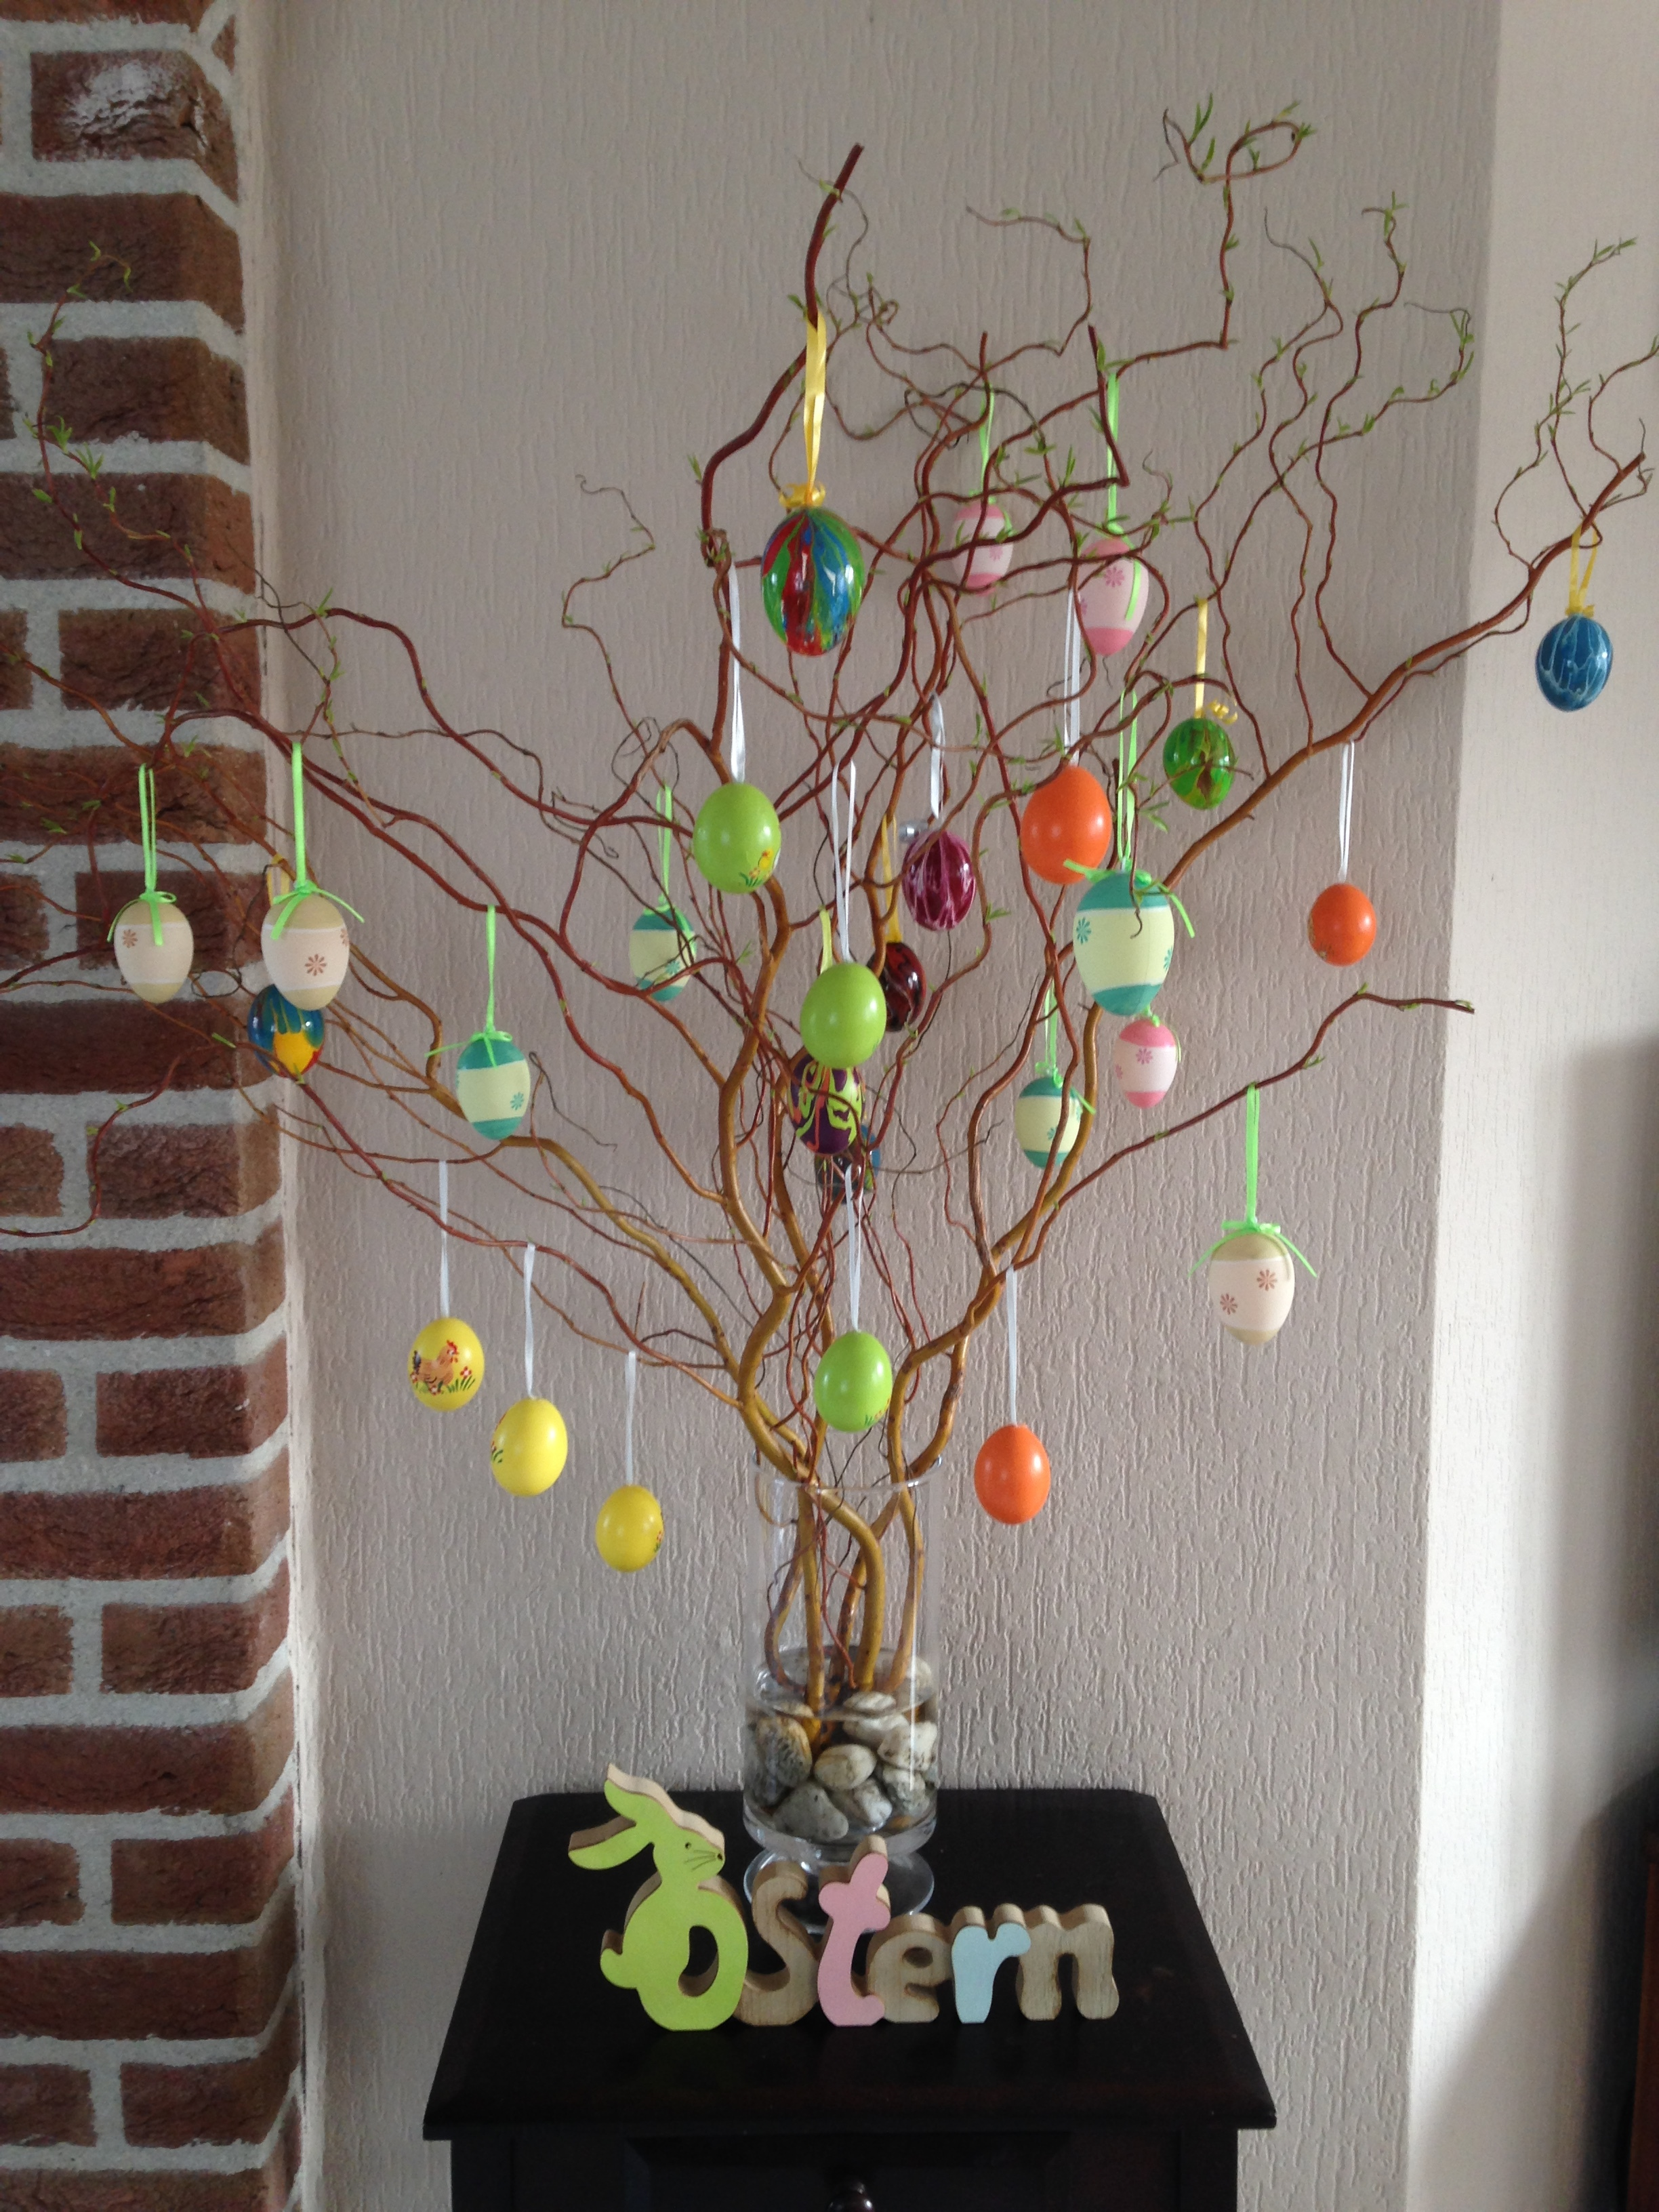 My kids decorated our tree with a mishmash of eggs they have collected at markets or made themselves over the years here in Germany.